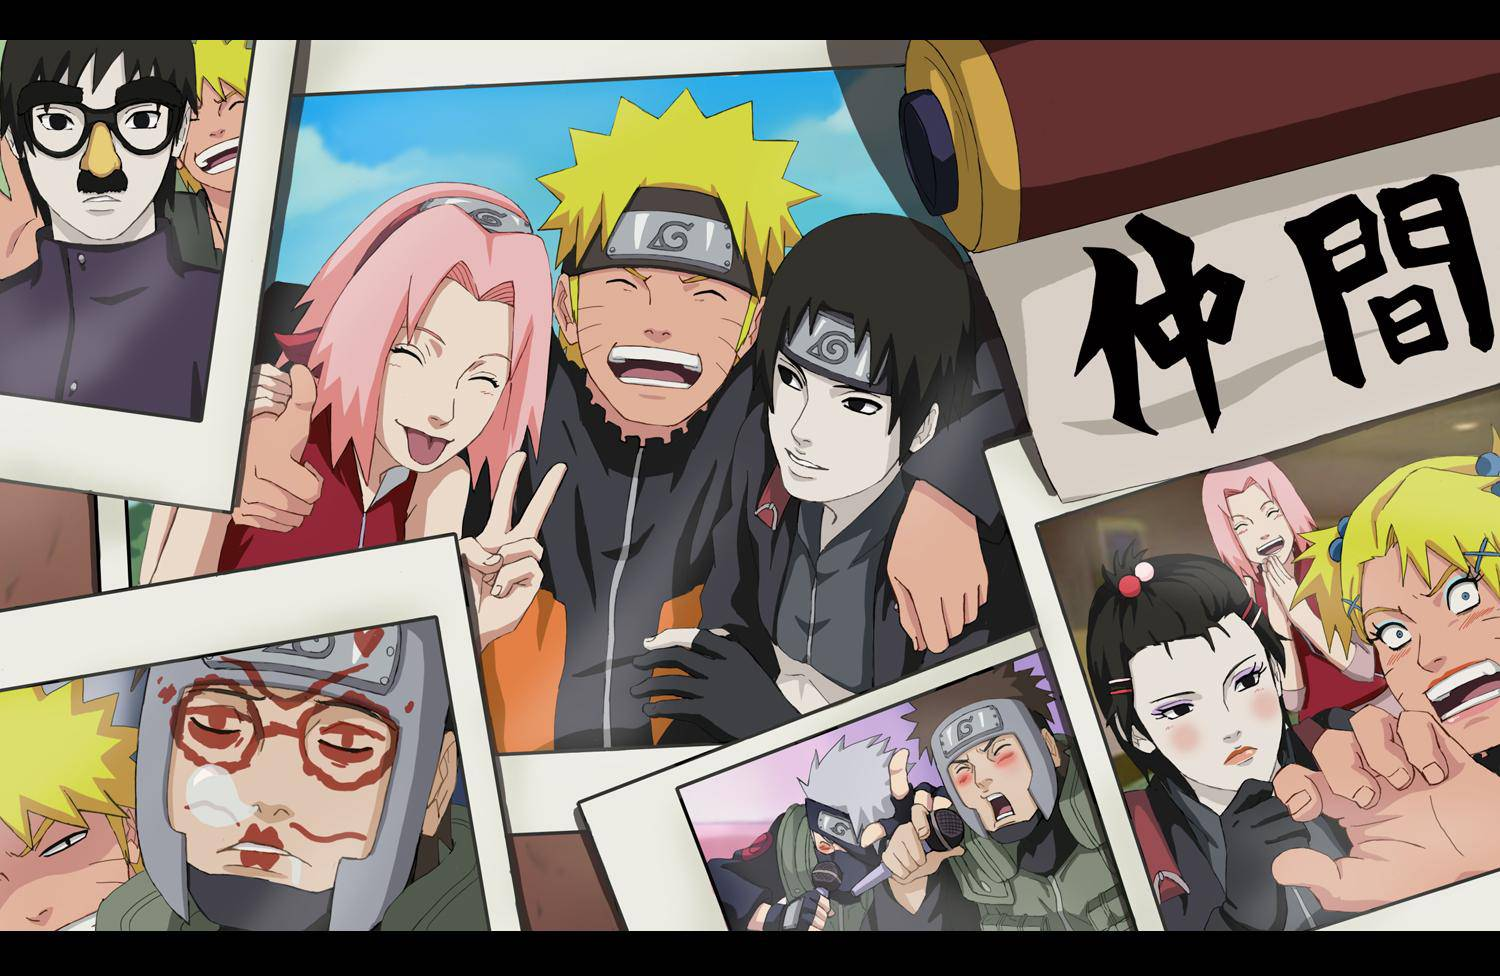 naruto team 7 wallpapers - wallpaper cave